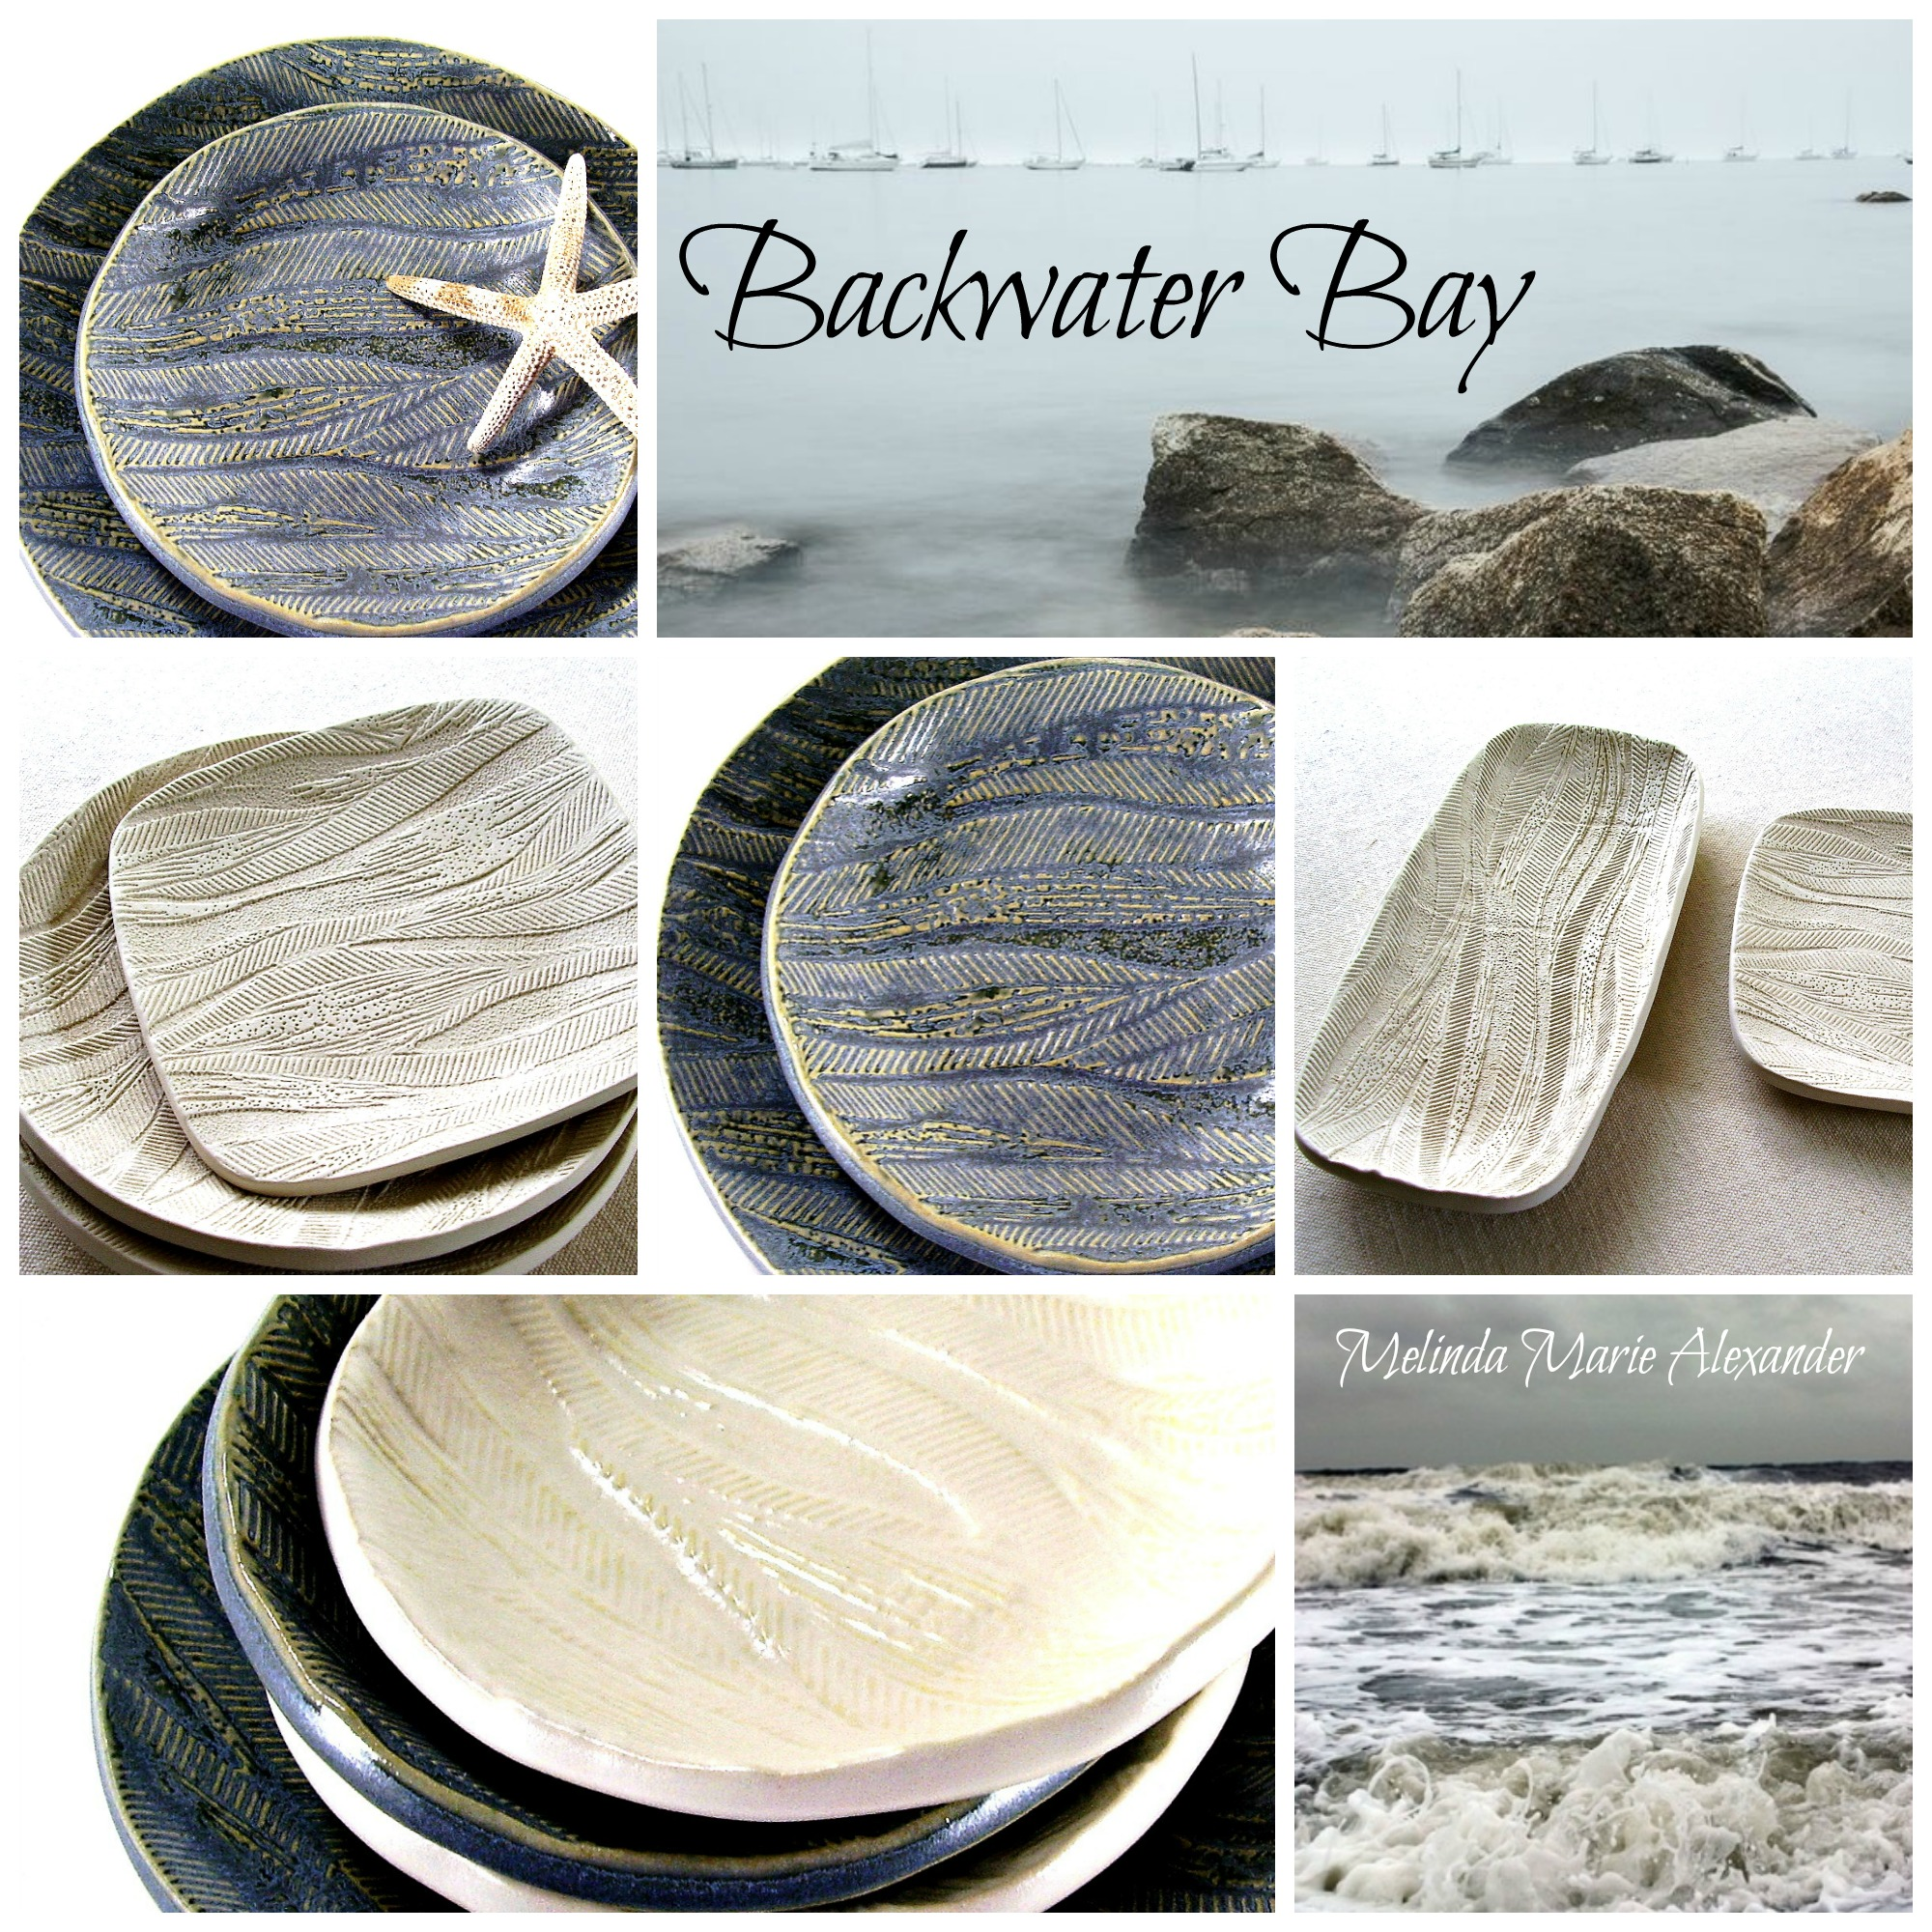 backwater-bay-inspiration-board-with-text